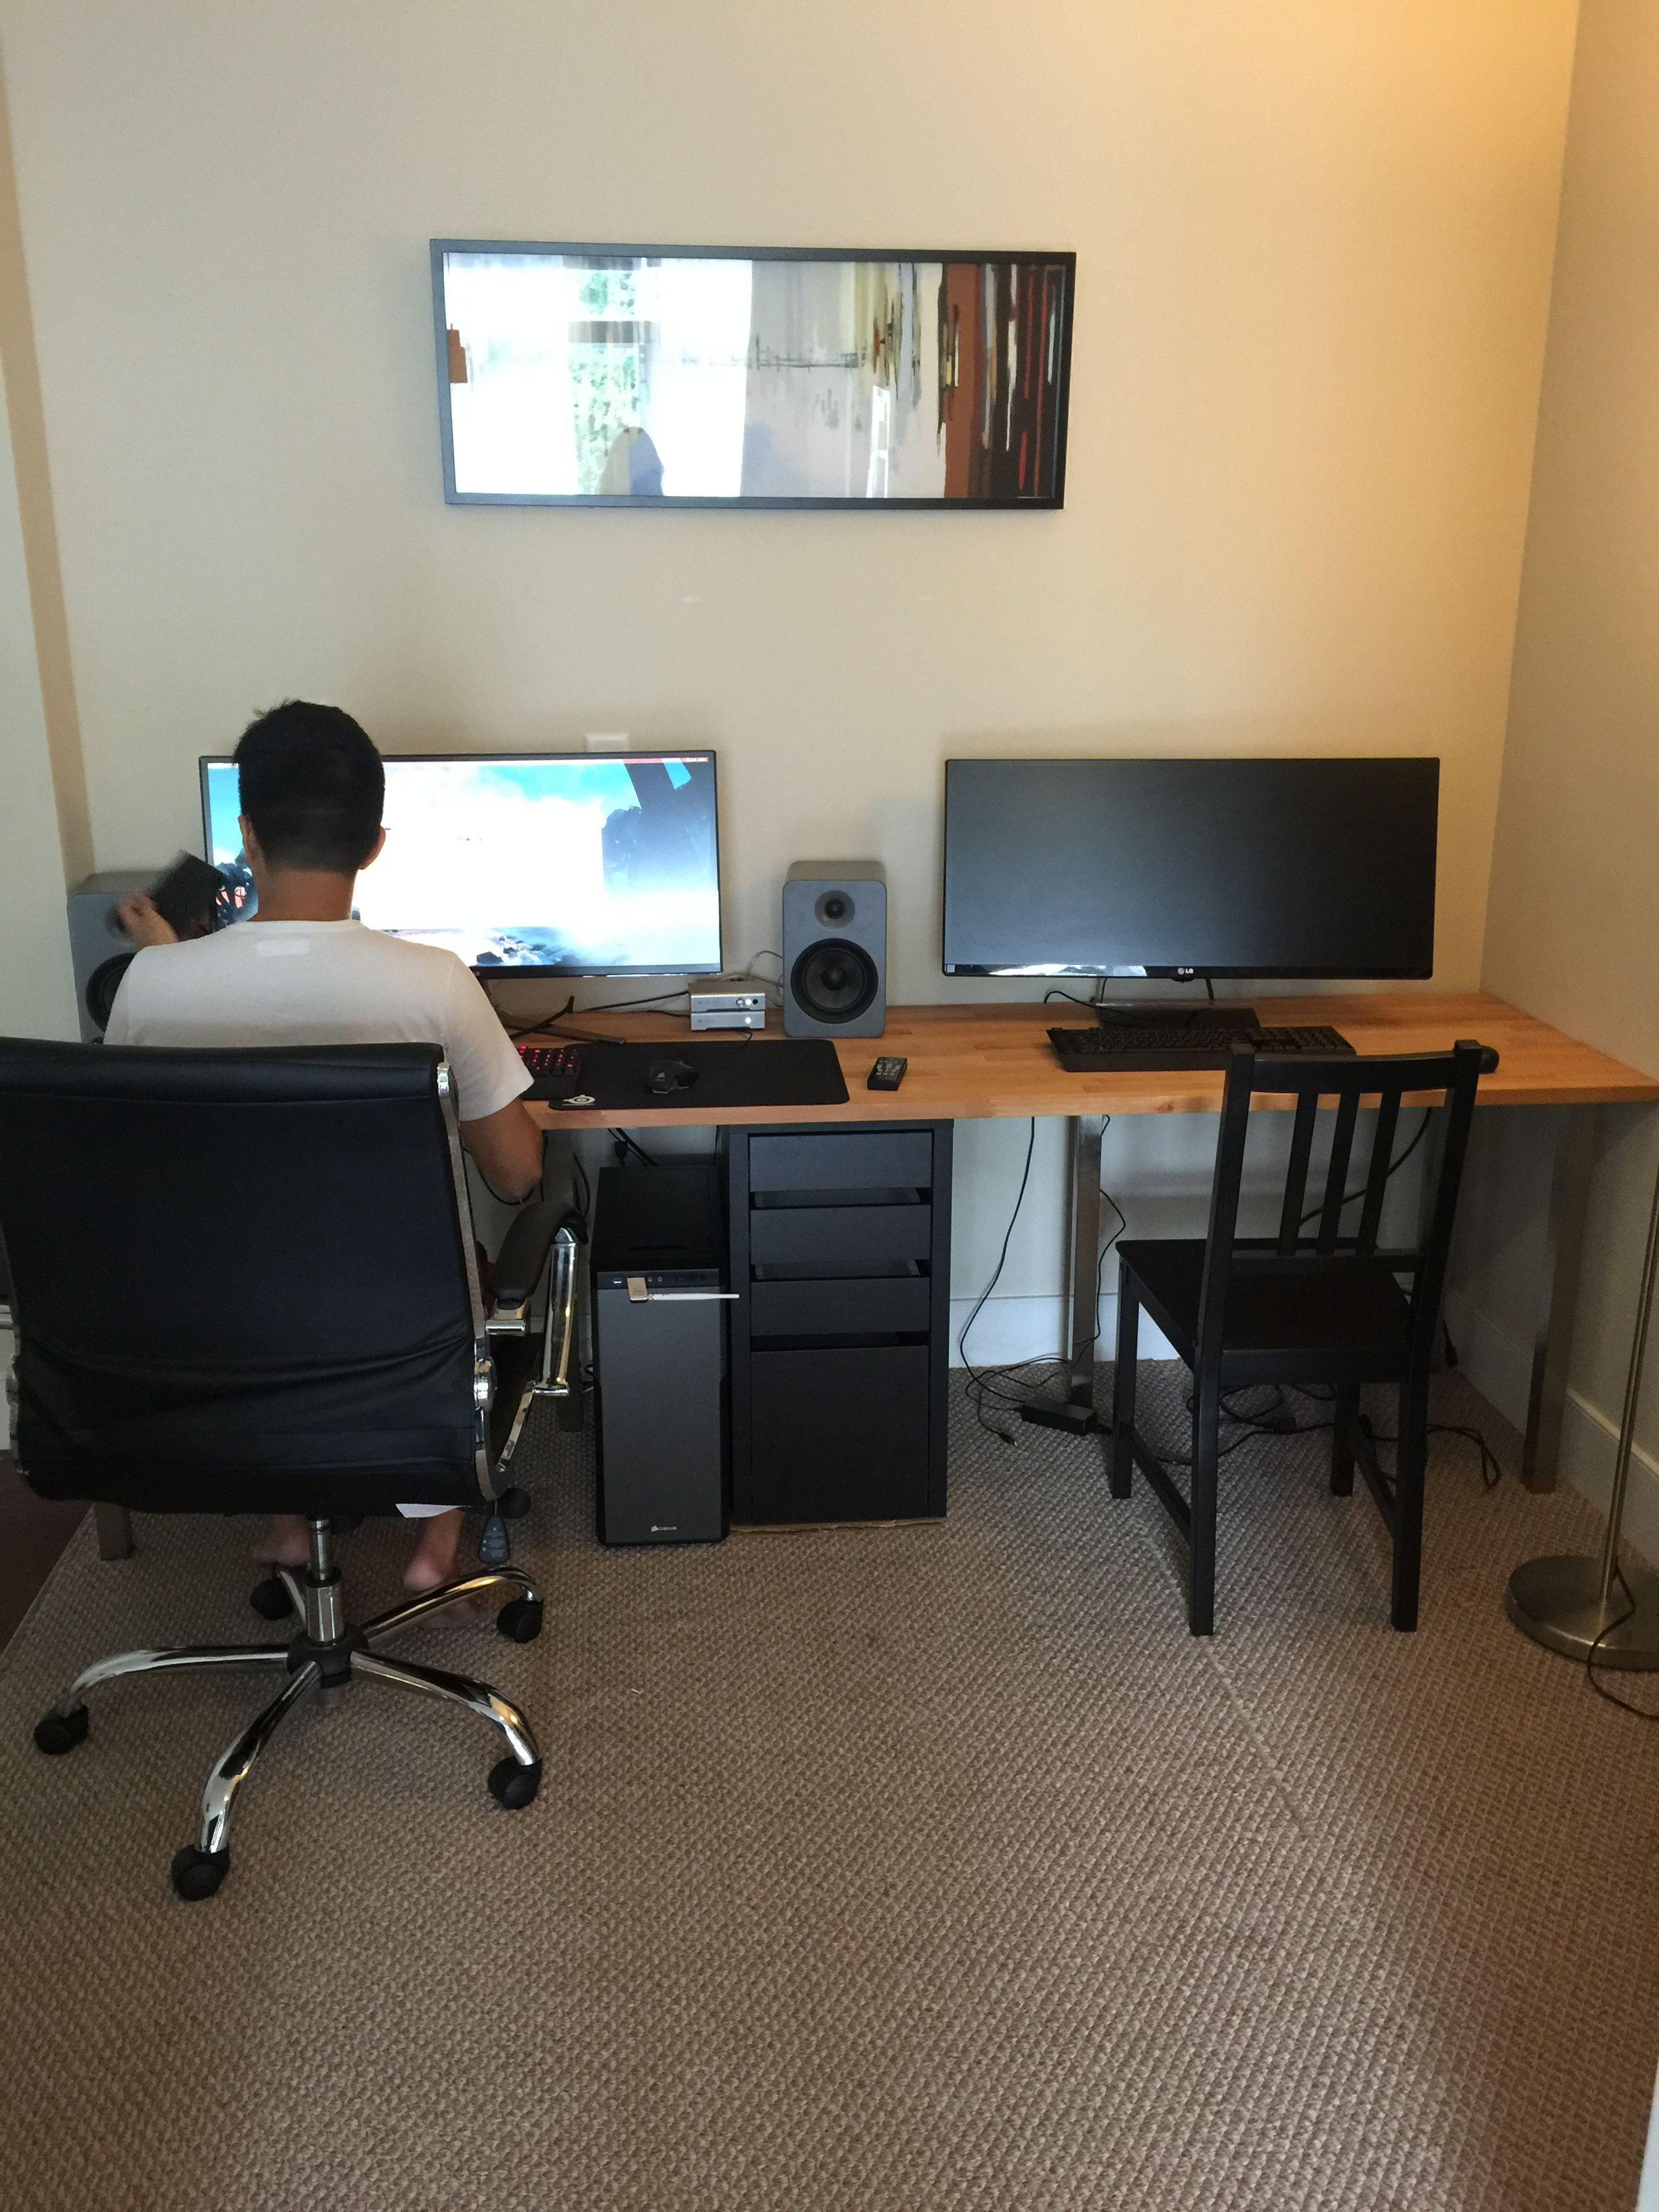 home office desk for two. Check Out The Most Popular Desks For Two People: T Shaped, Office Desks, Workstations, Home Office, Side By Side, 2 Person Corner Desk. Desk O